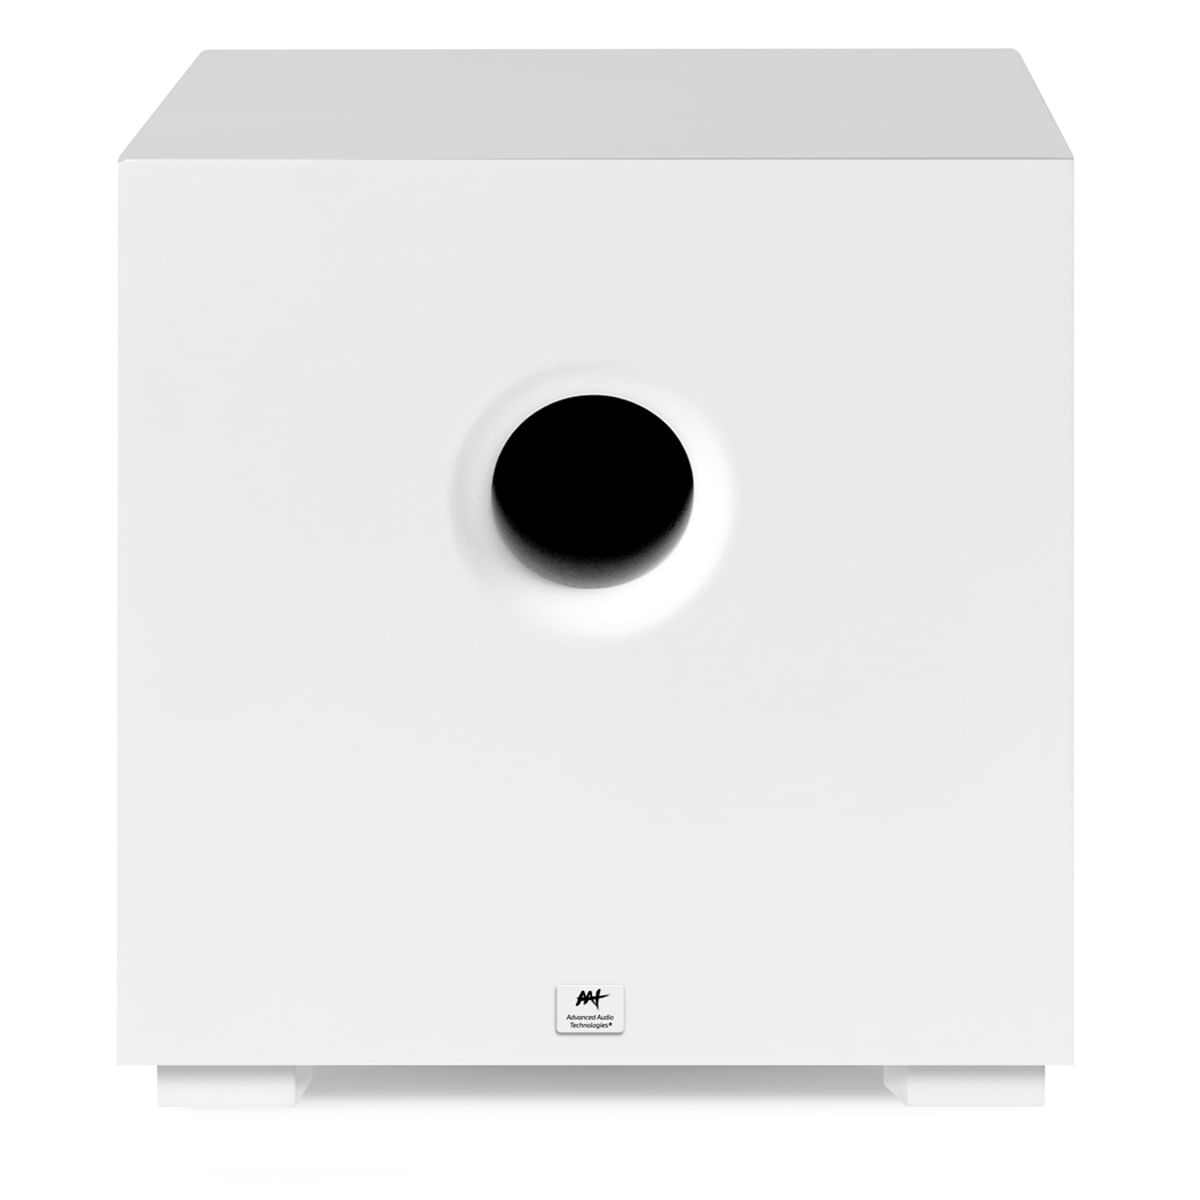 Aat-Compact-Cube-Branco-Frontal